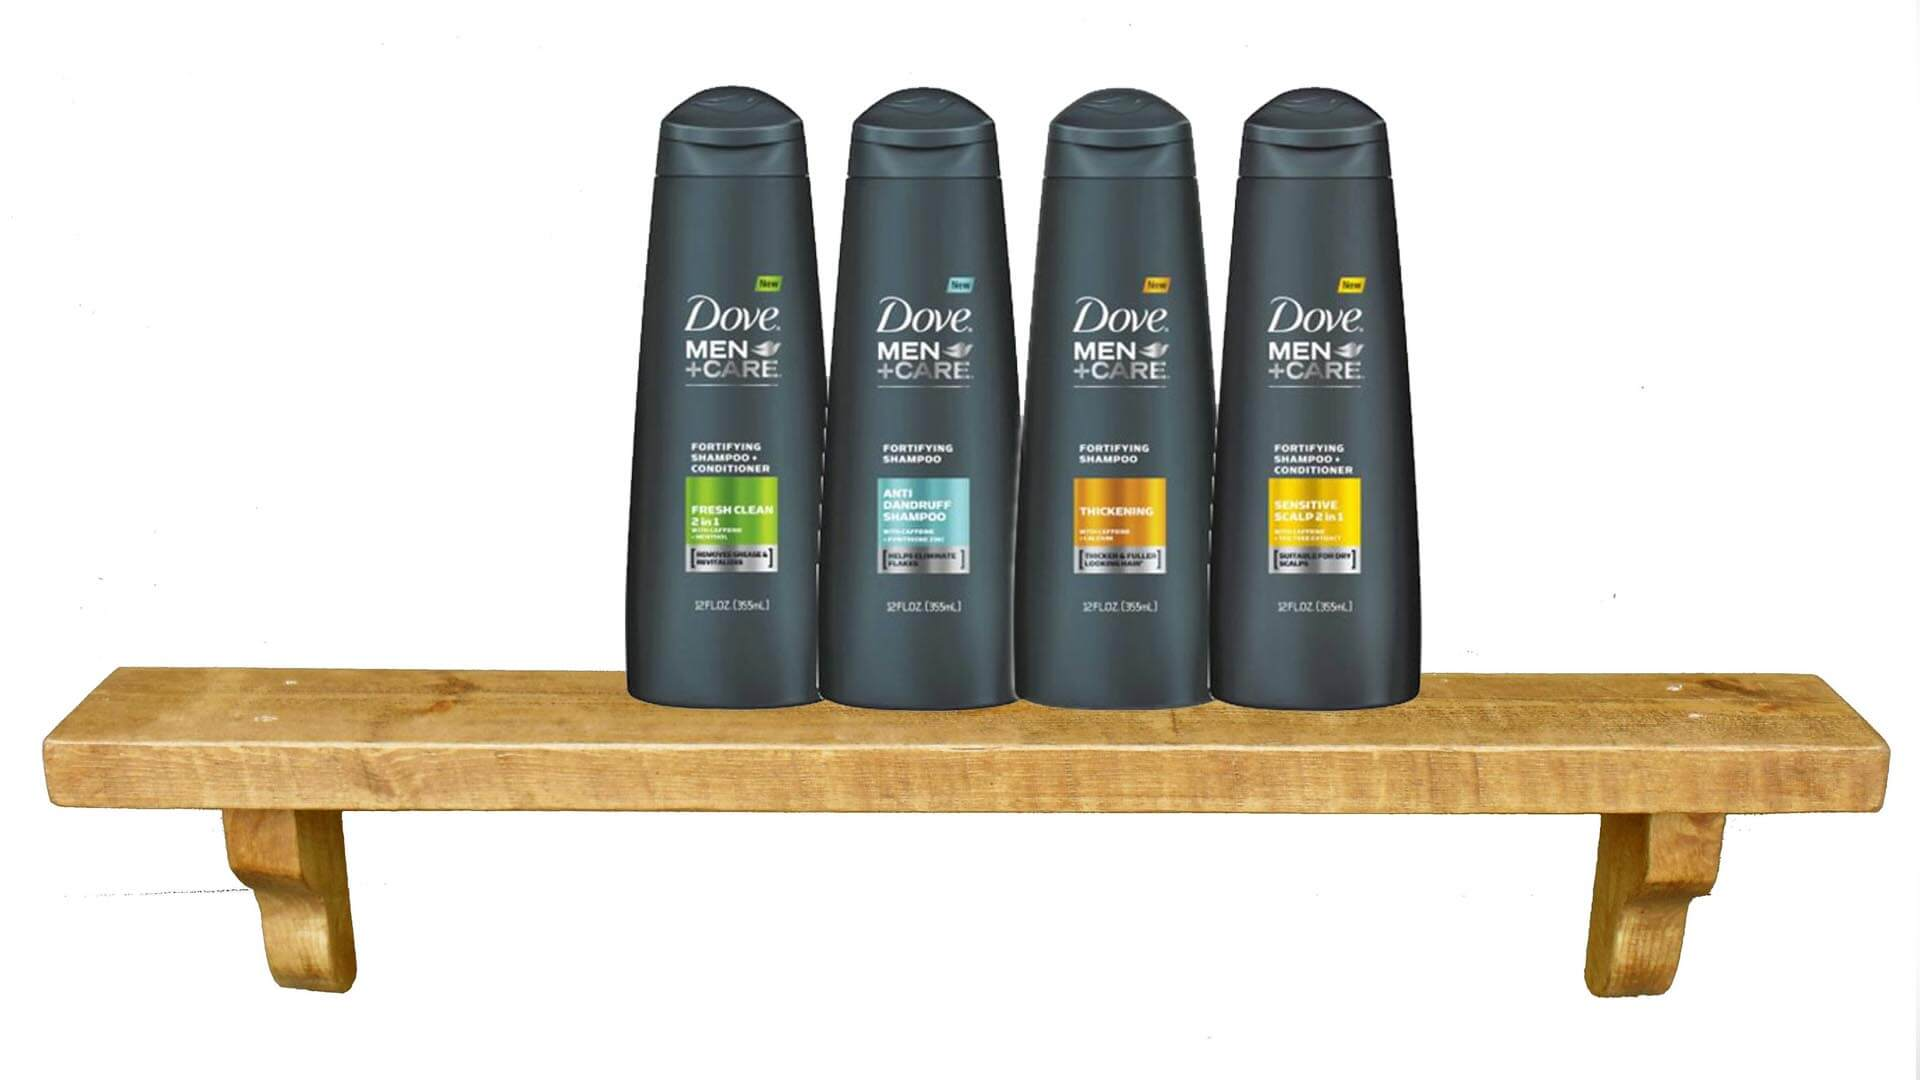 dove-men-shampoo